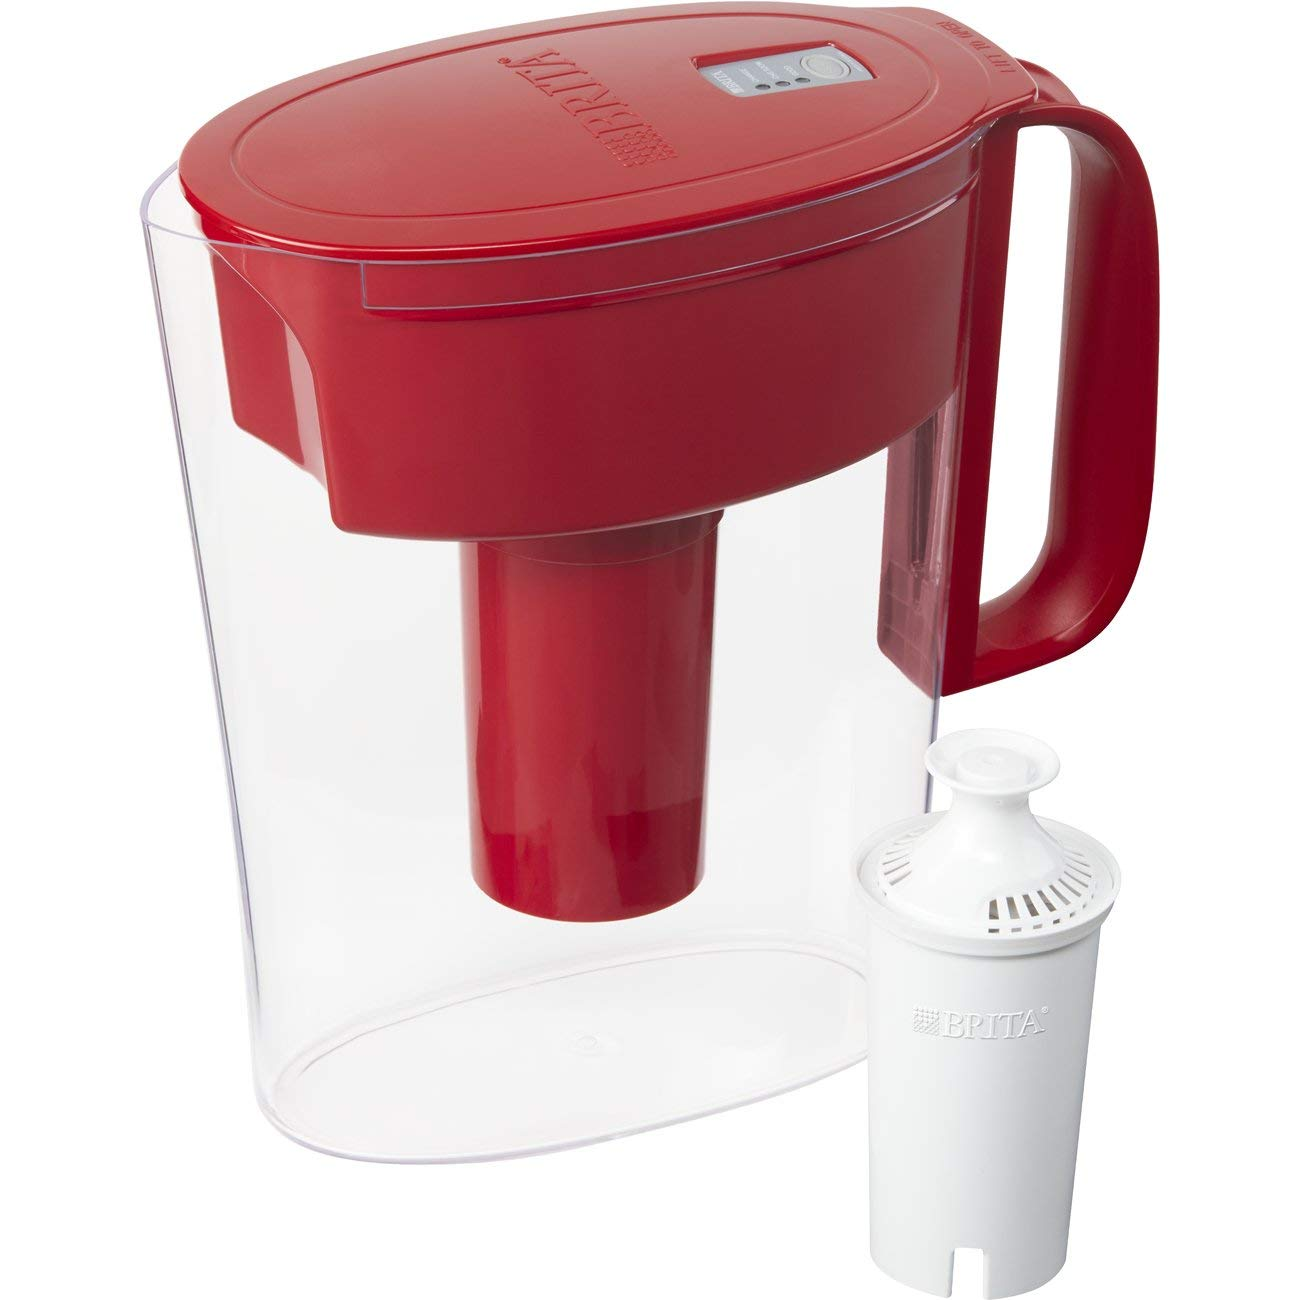 Brita Small 5 Cup Water Filter Pitcher with 1 Standard Filter, BPA Free – Metro, Red